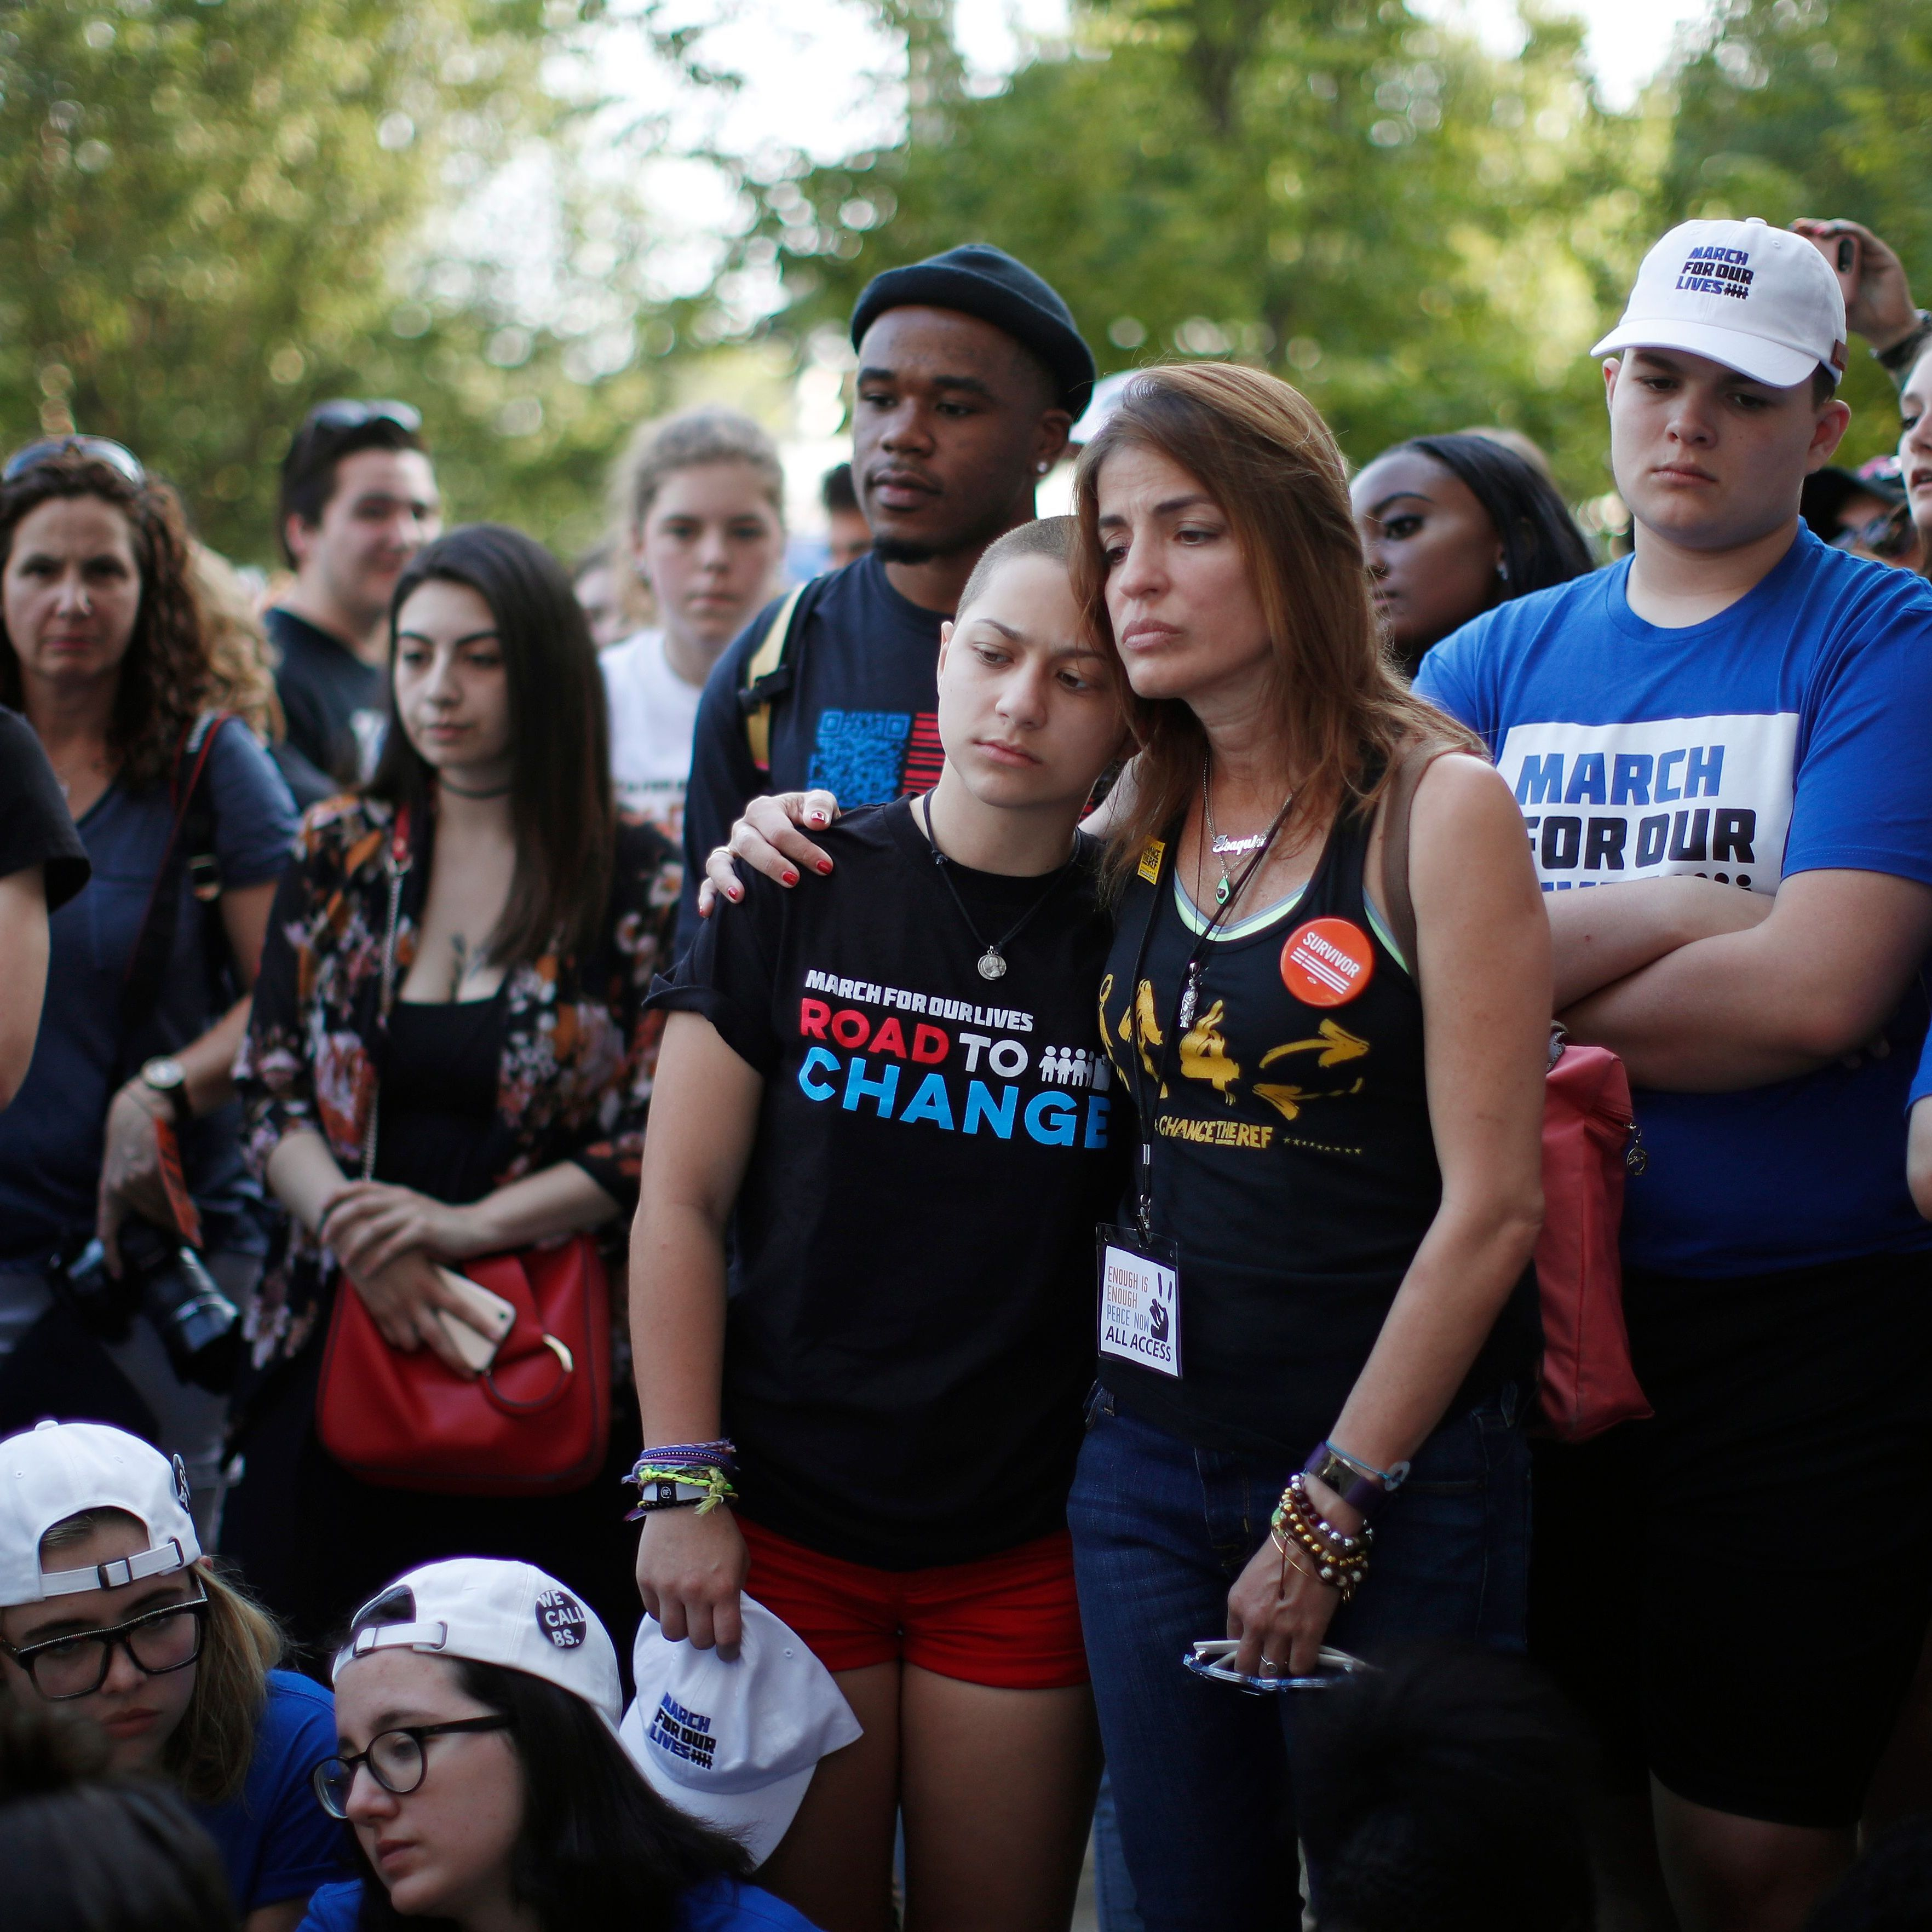 Parkland activist Emma González (left) hugs Patricia Oliver (right) at an End of School Year Peace March and Rally in Chicago on June 15, 2018. Patricia's son Joaquin was killed in the Parkland shooting.